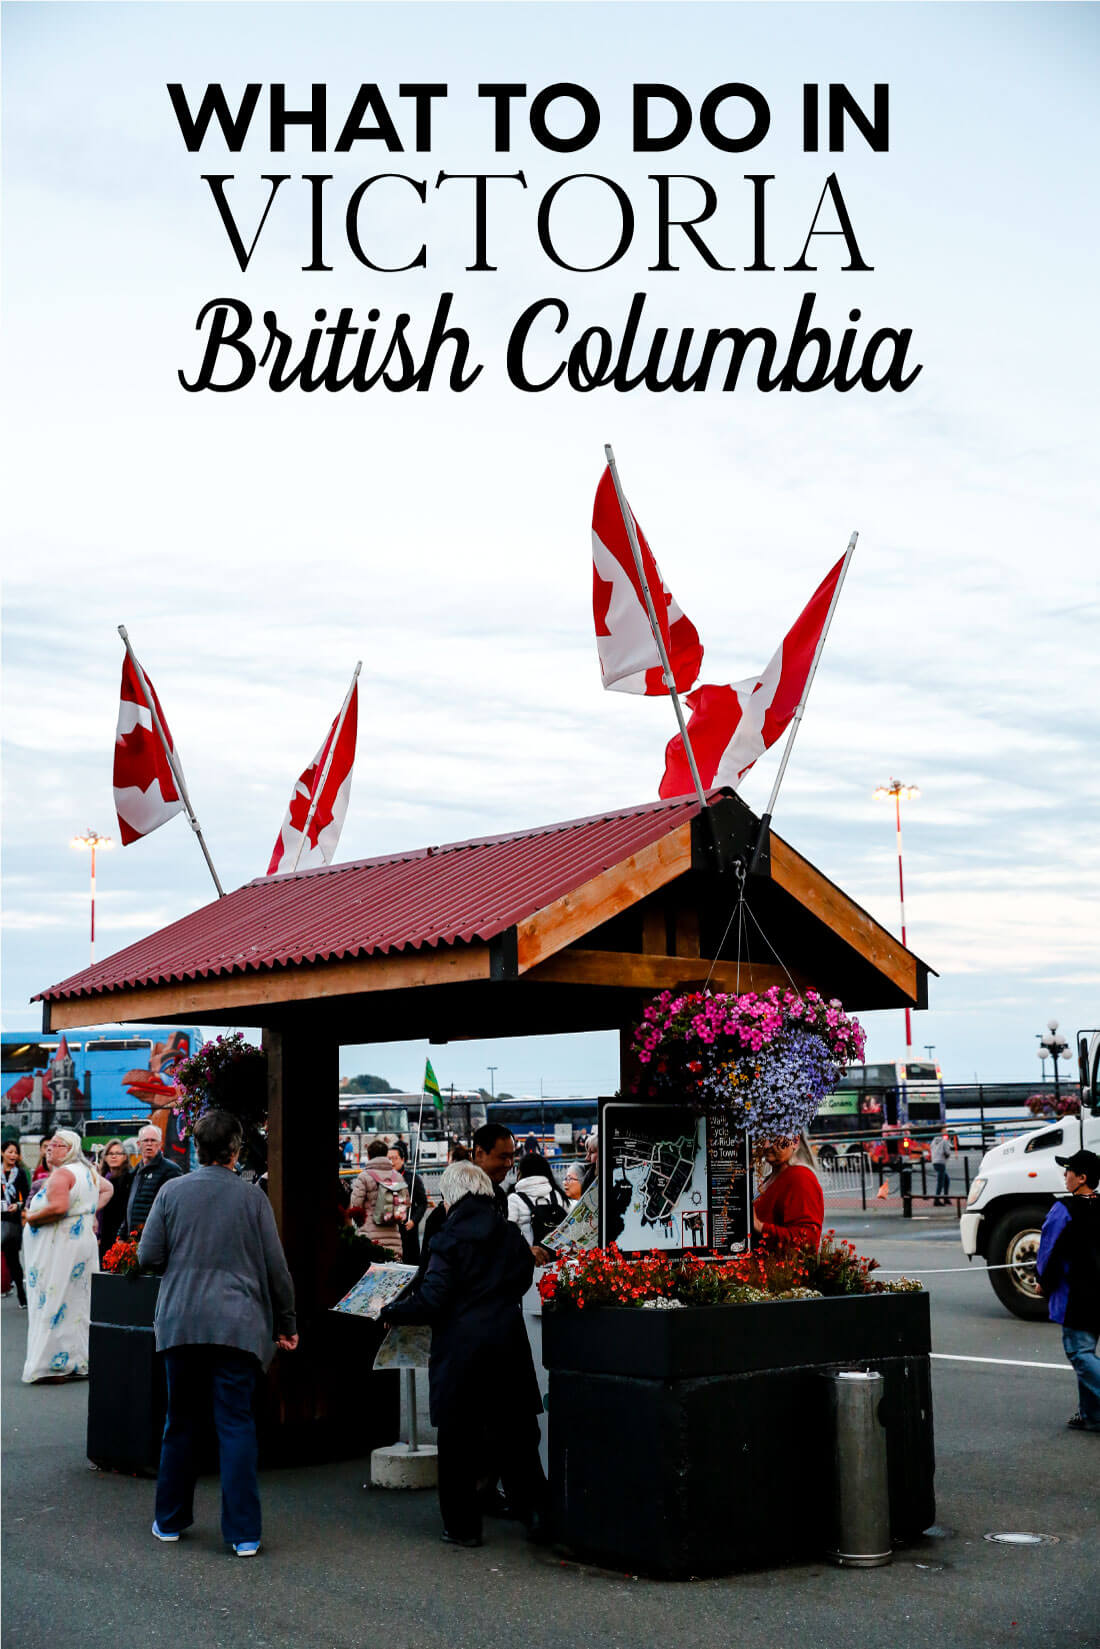 What to Do in Victoria British Columbia - fun things to do and see while traveling to BC from www.thirtyhandmadedays.com